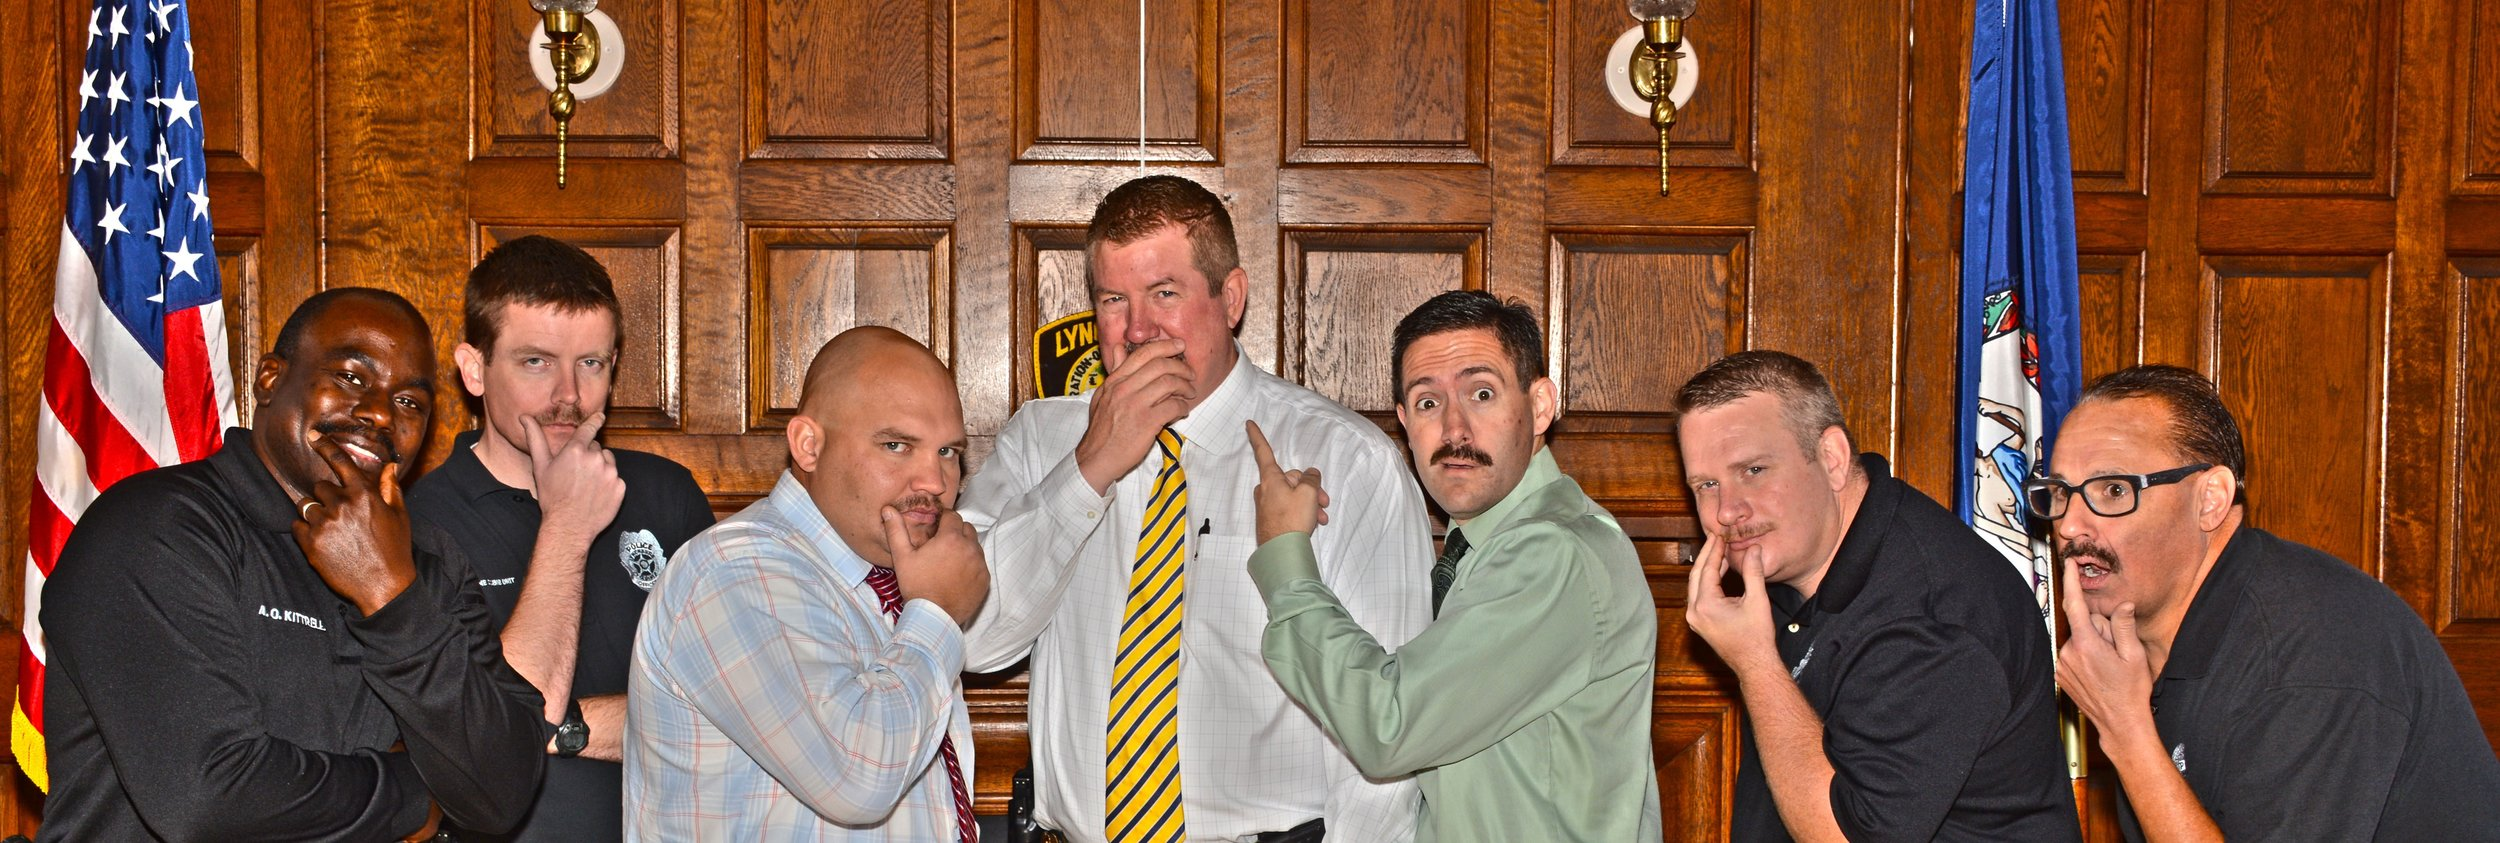 Lynchburg Police Department show off their mustaches during M4K 2015